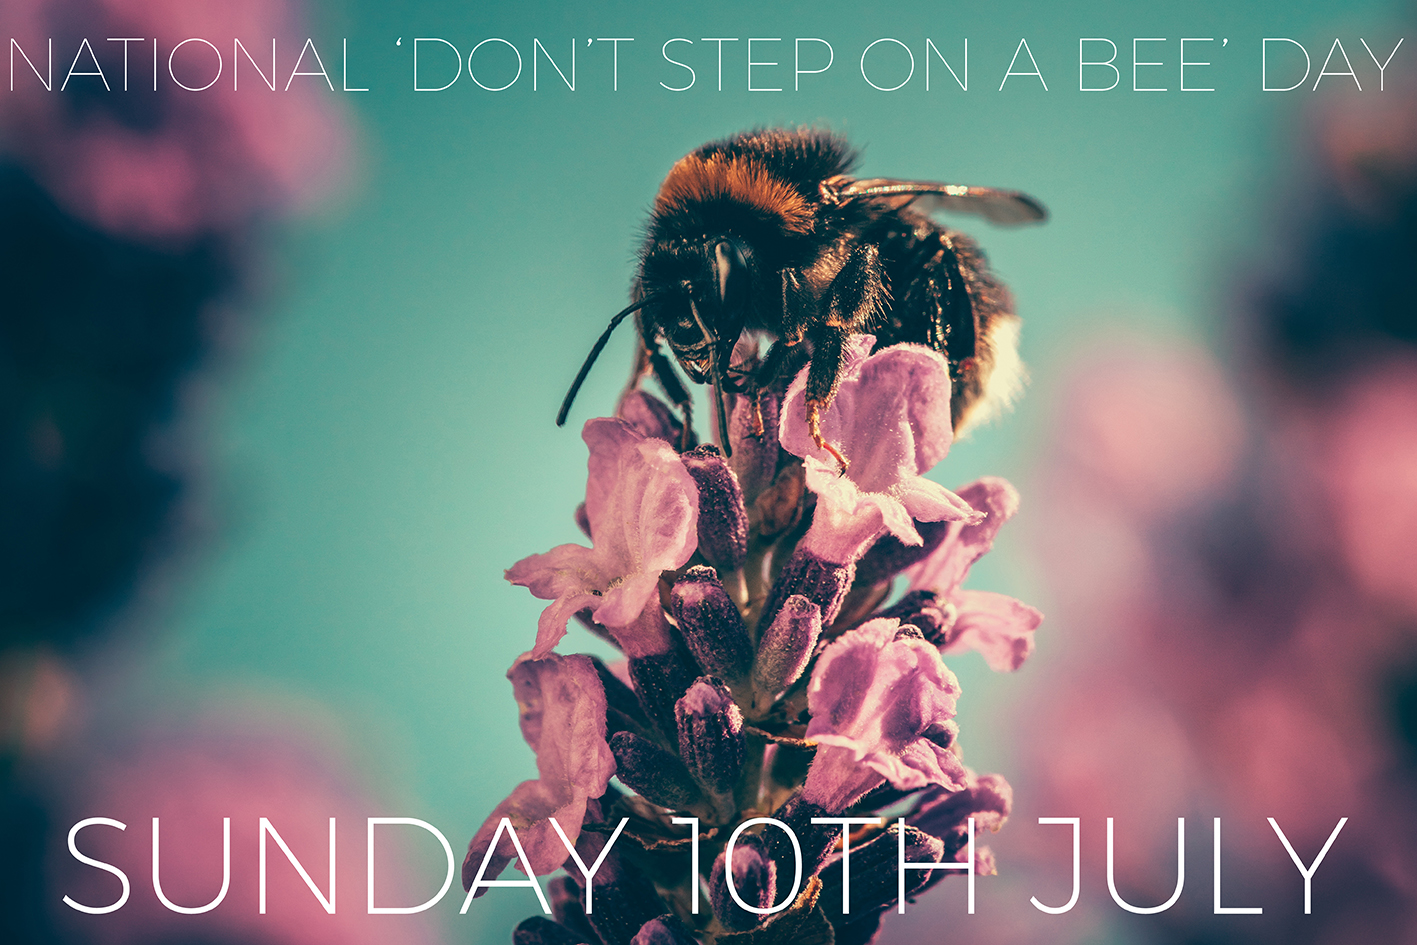 dont step on a bee